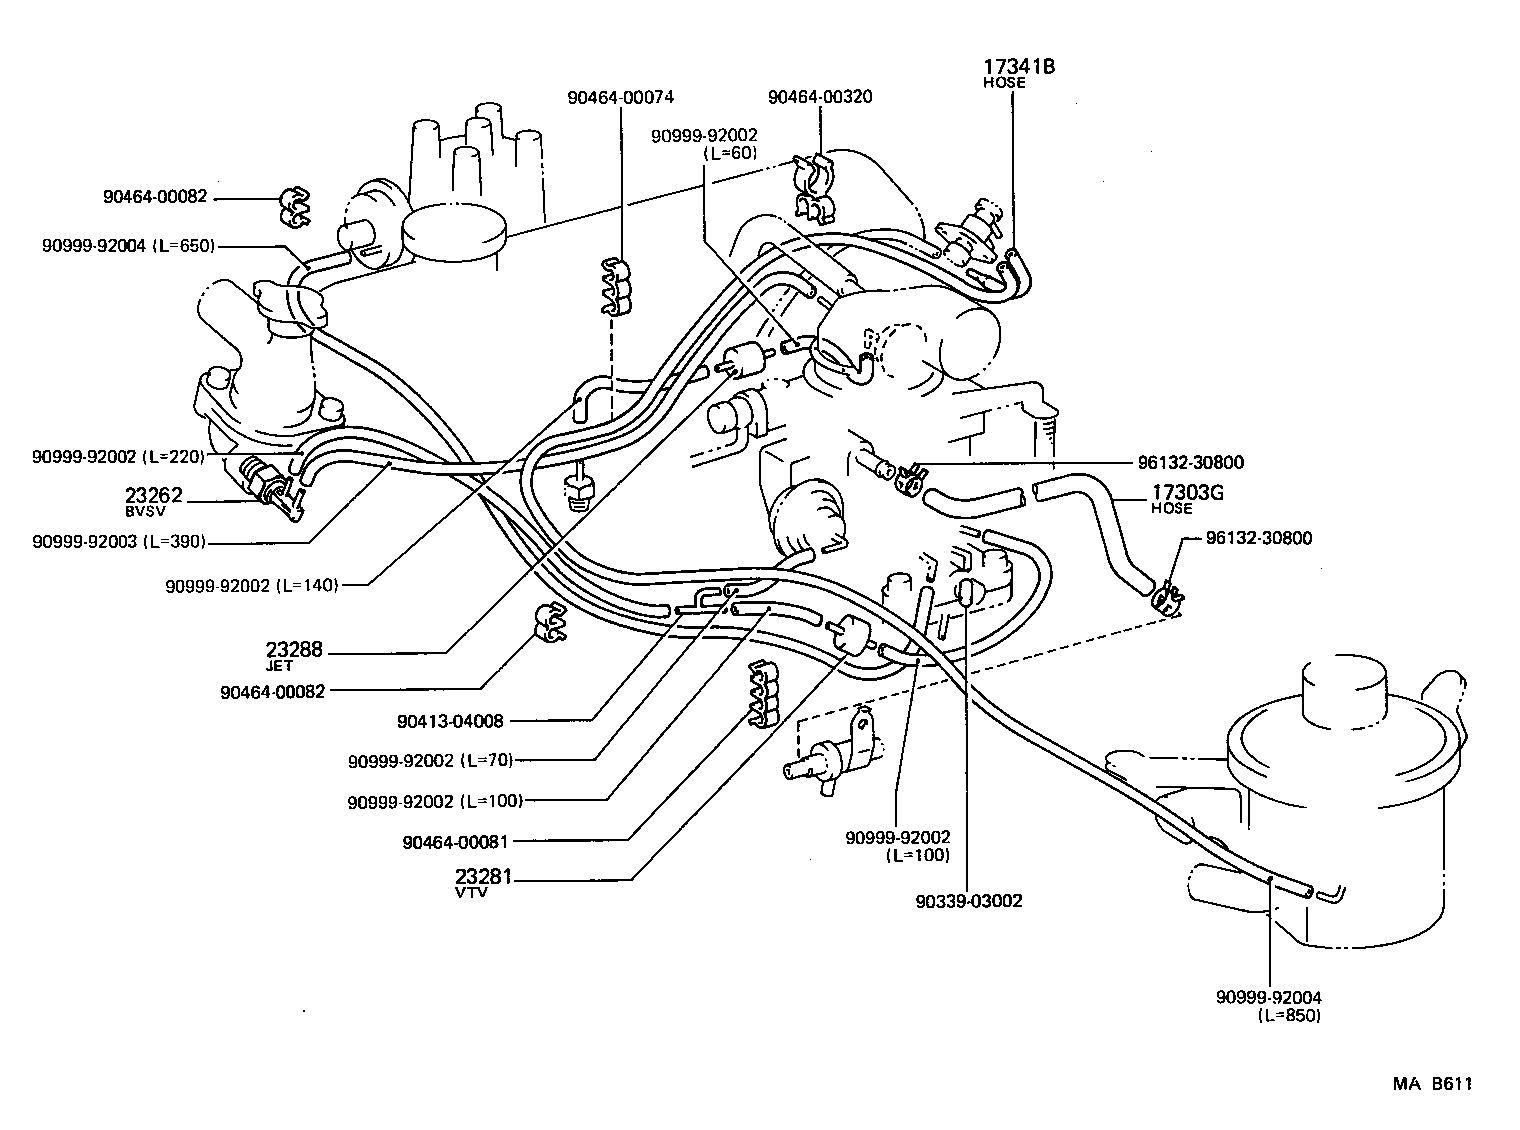 toyota 5k engine diagram  toyota  auto wiring diagram